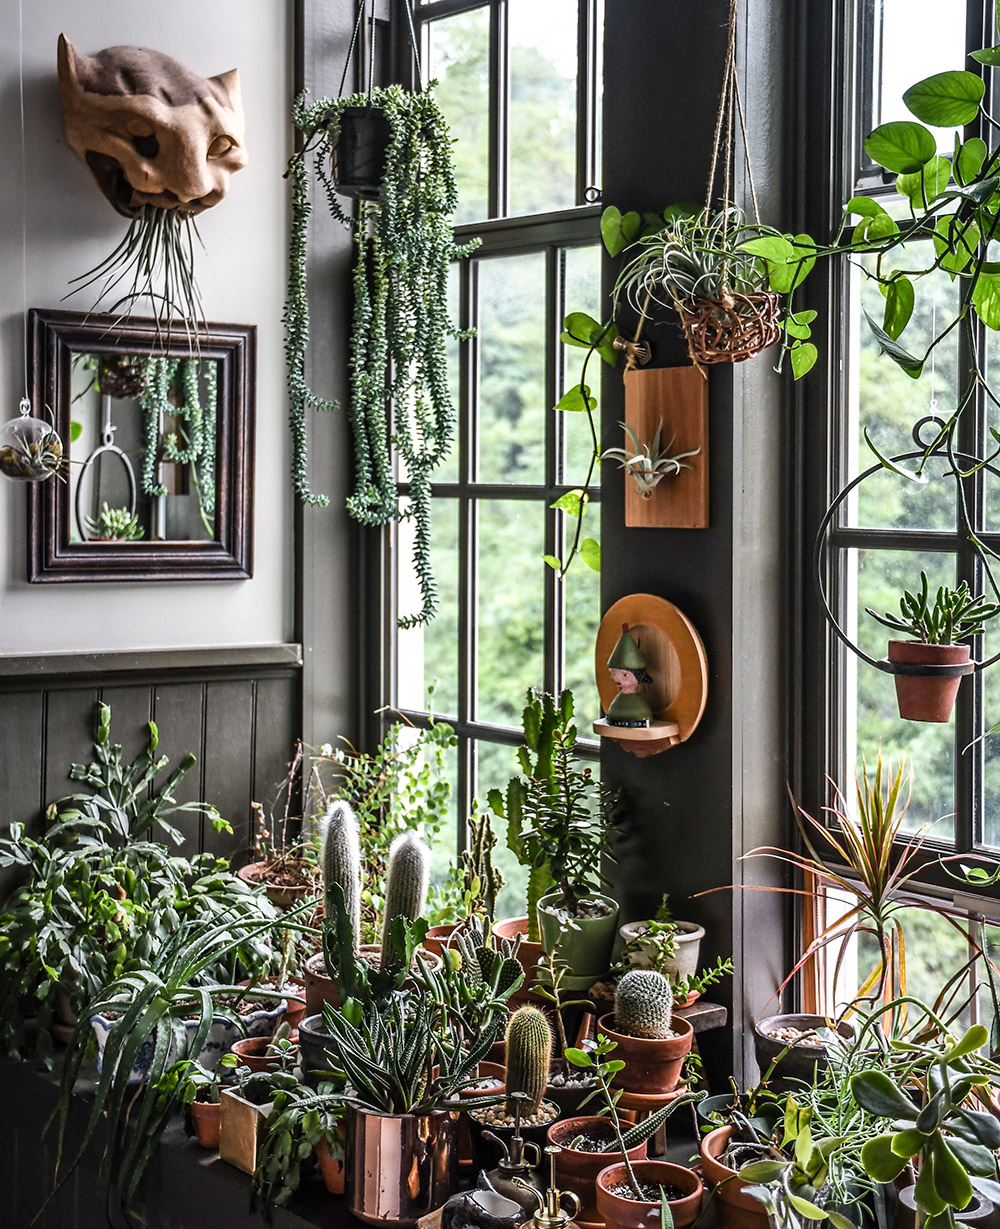 Hilton Carter's plant filled home